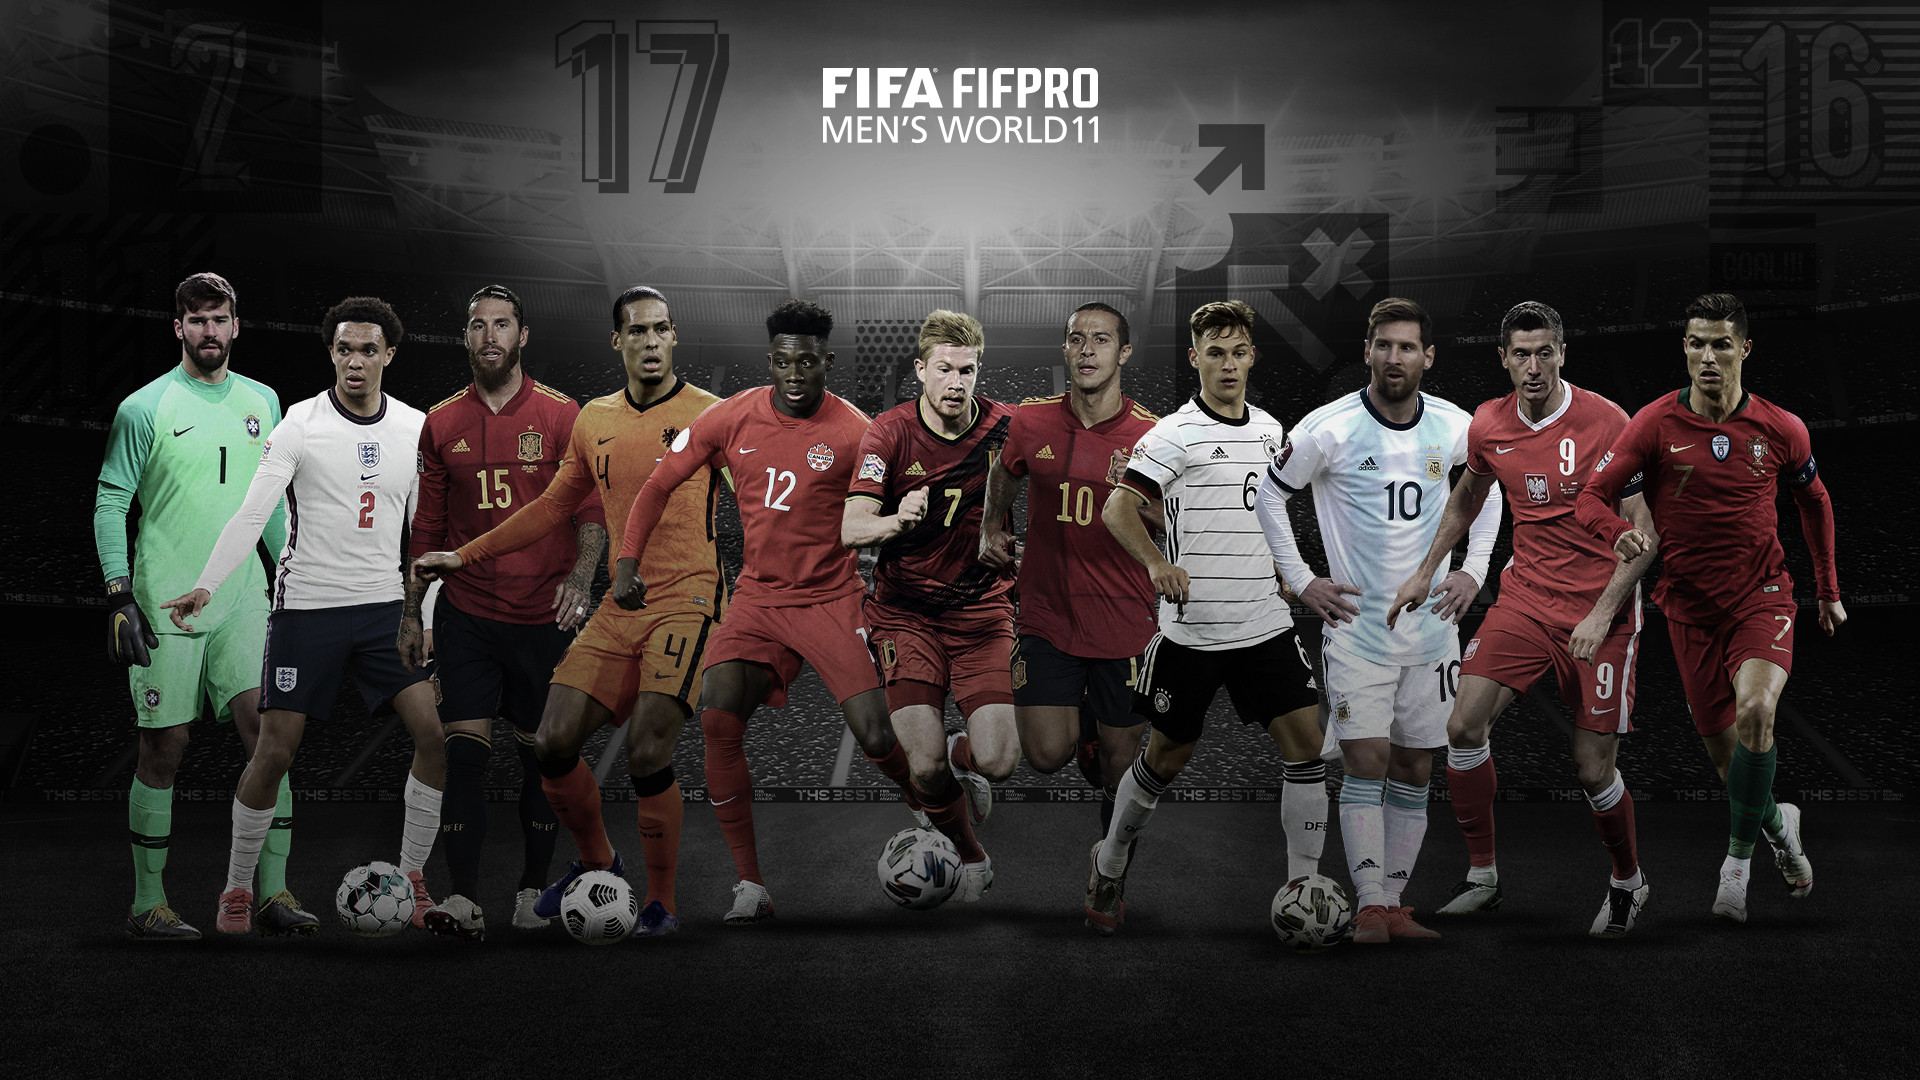 Messi, Ronaldo and Lewandowski named in FIFA FIFPro Men